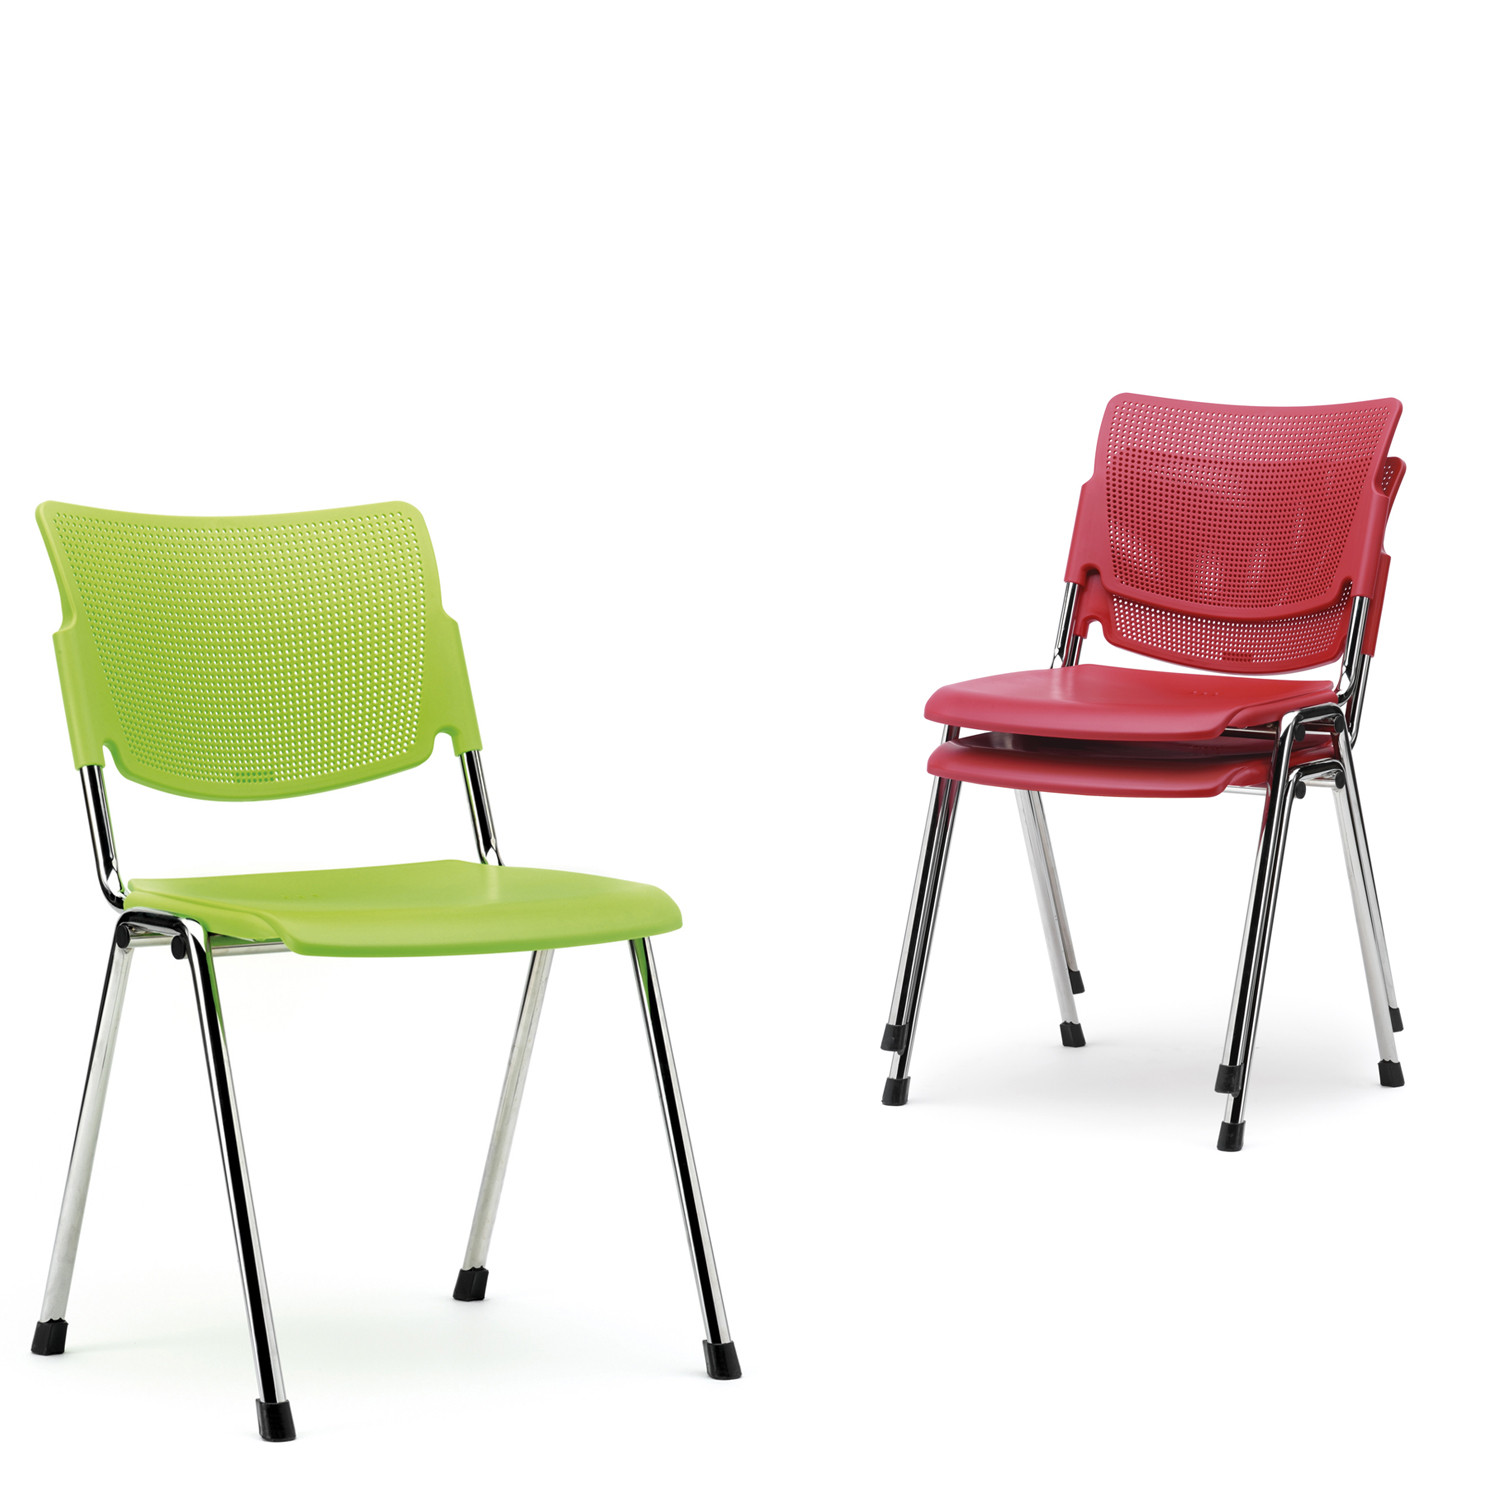 Mia Chairs